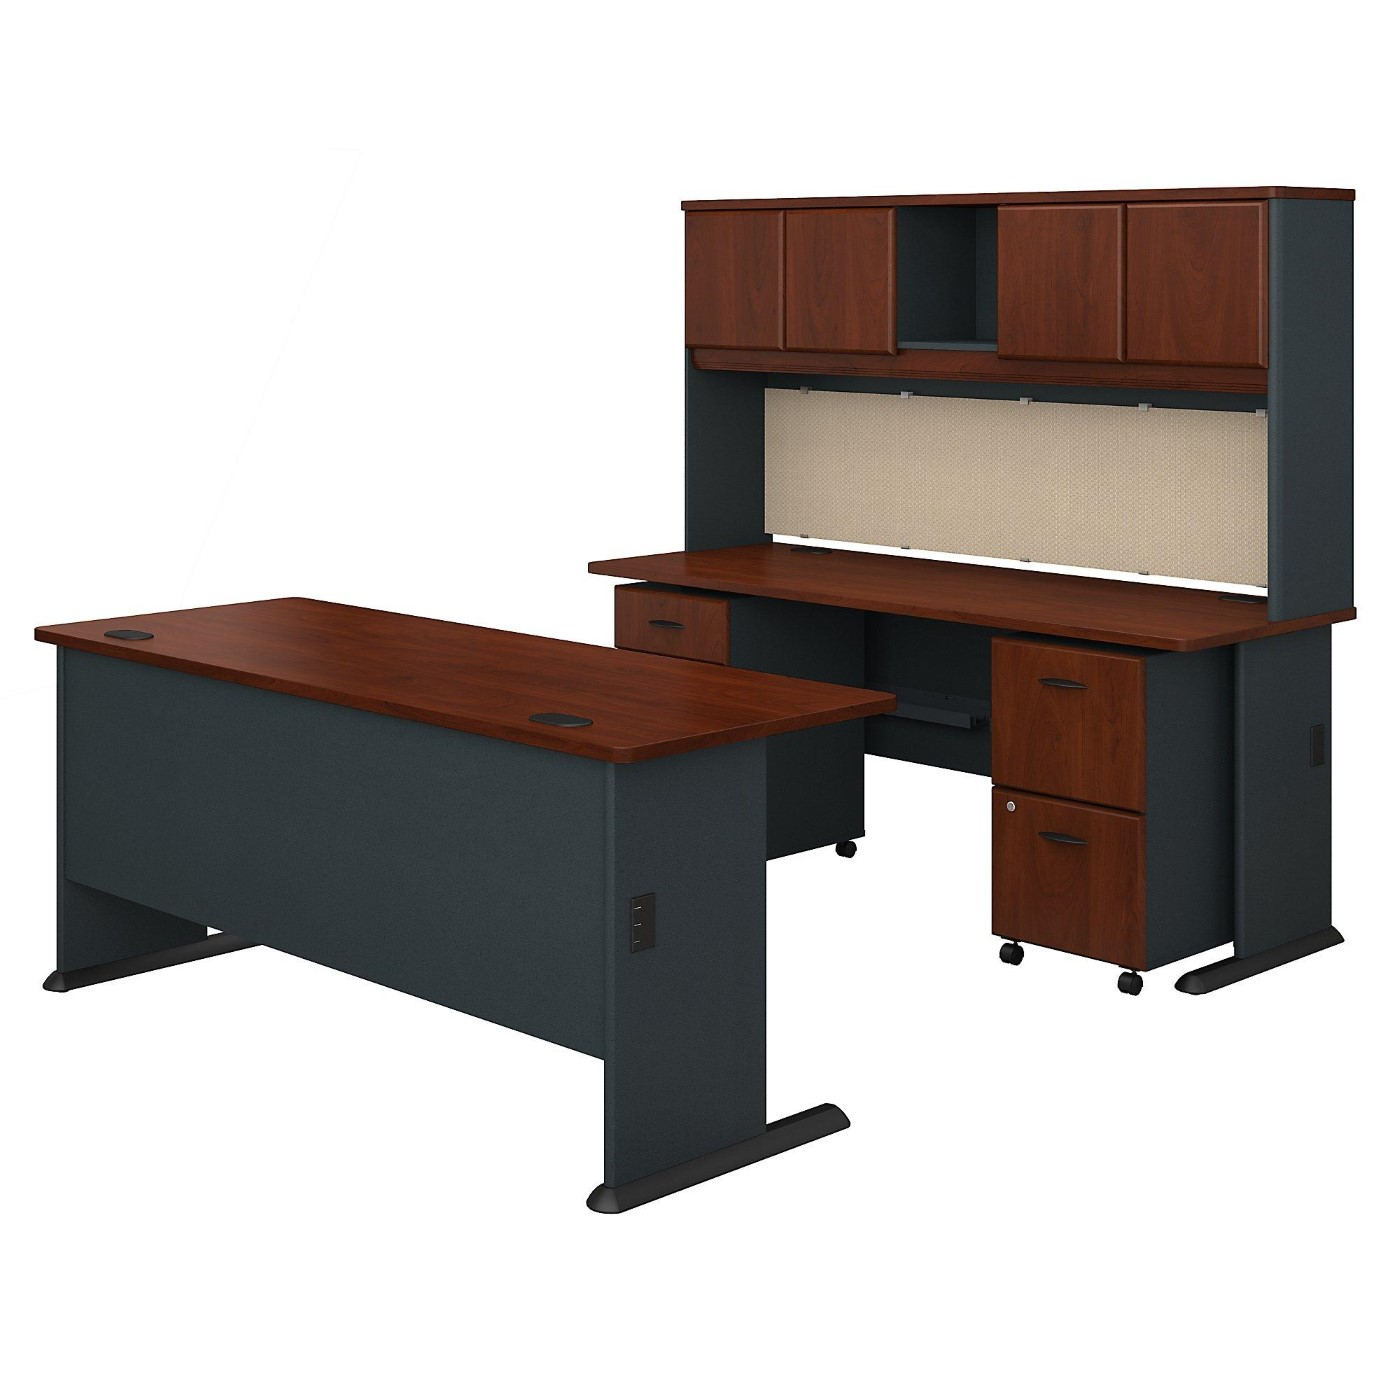 BUSH BUSINESS FURNITURE SERIES A 72W DESKS WITH HUTCH AND MOBILE FILE CABINETS. FREE SHIPPING.